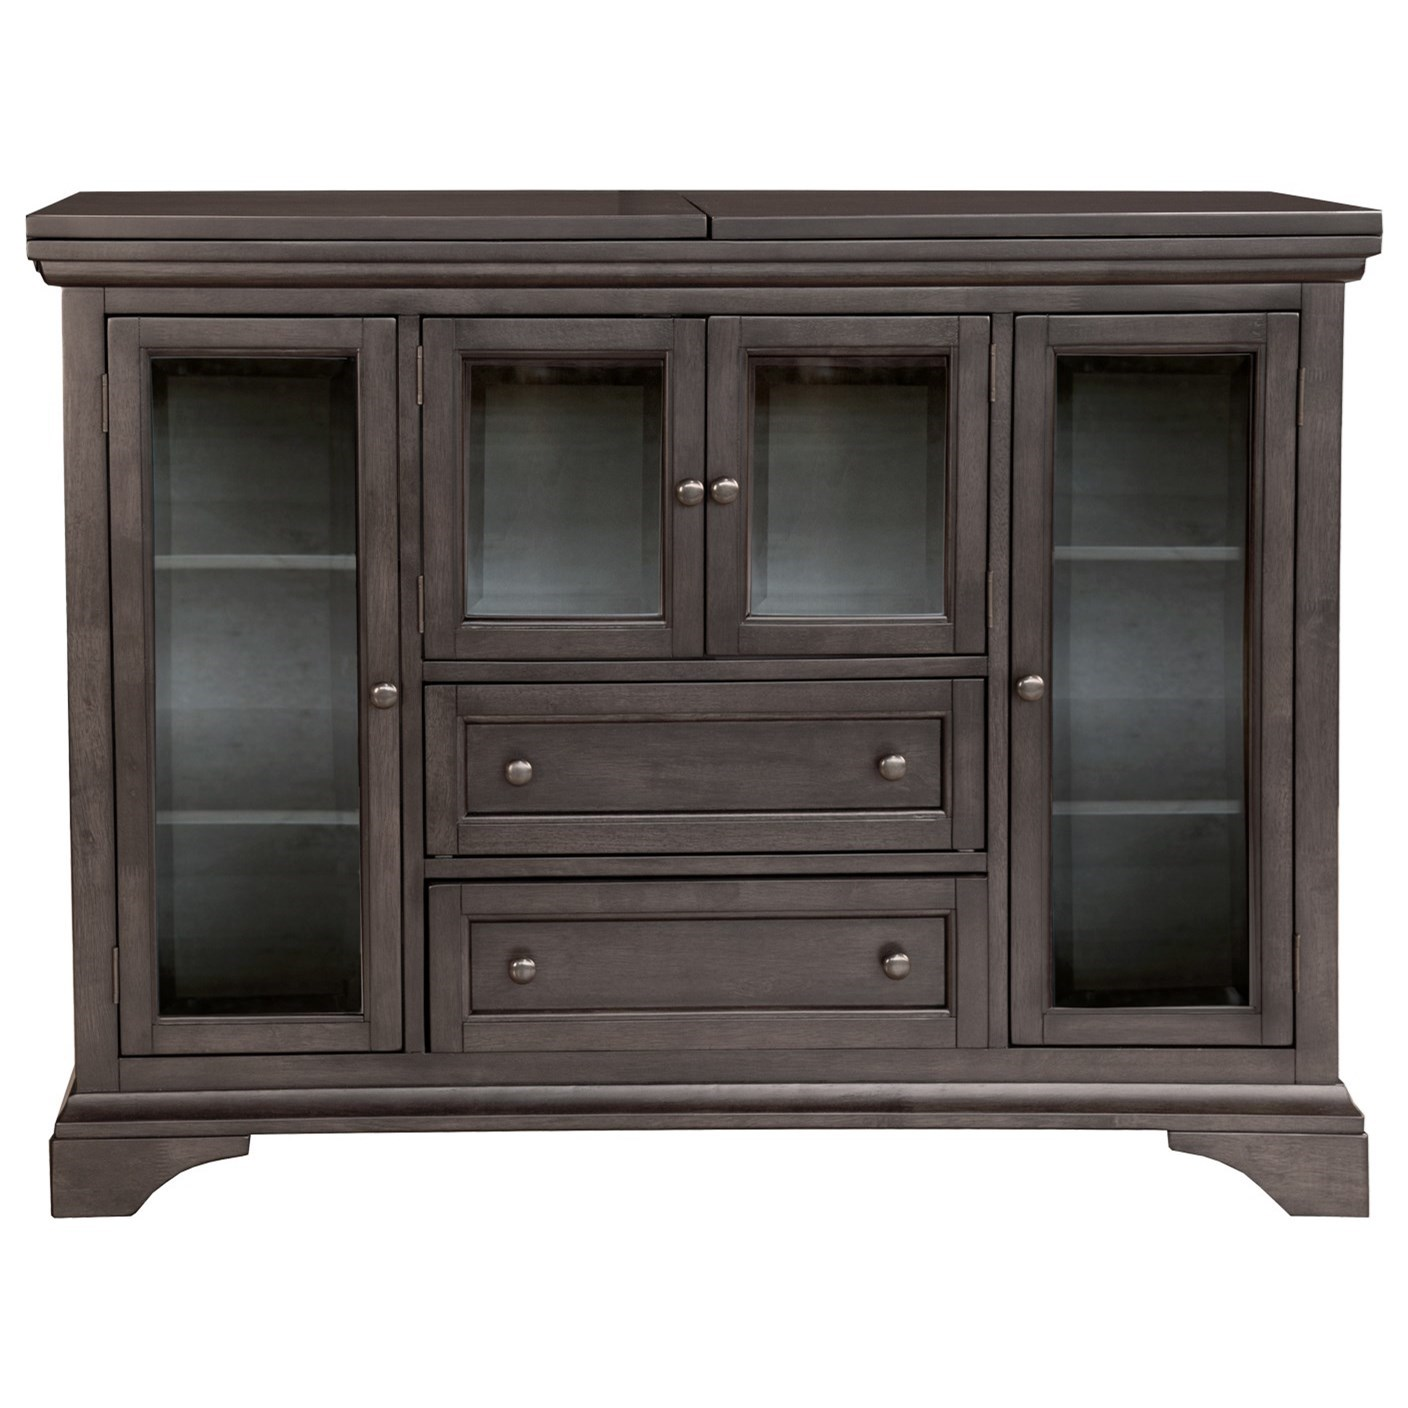 Mariposa Server by A-A at Walker's Furniture